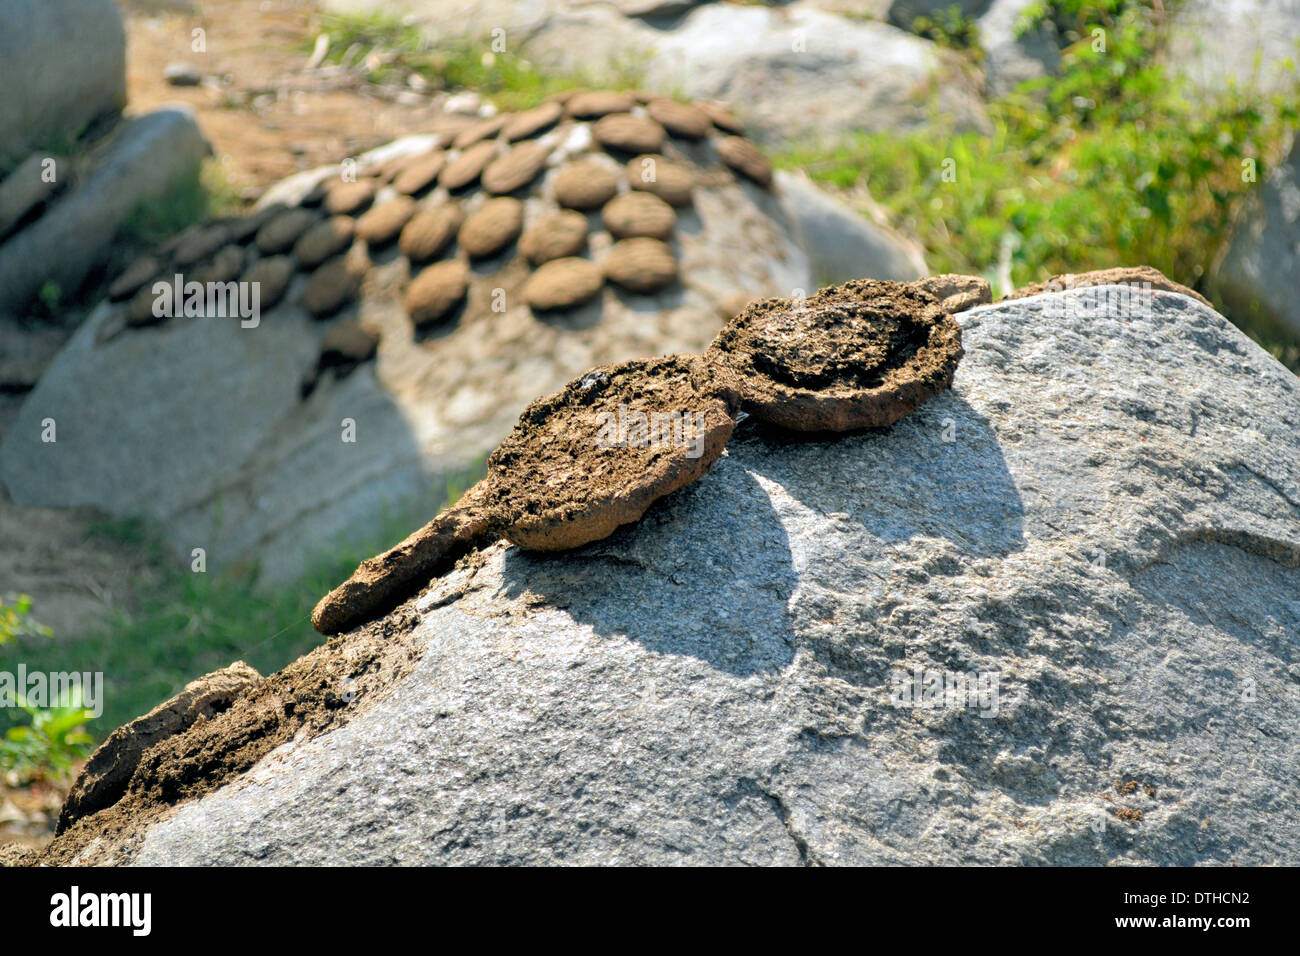 cow dung drying in the sun on a stone, India Stock Photo